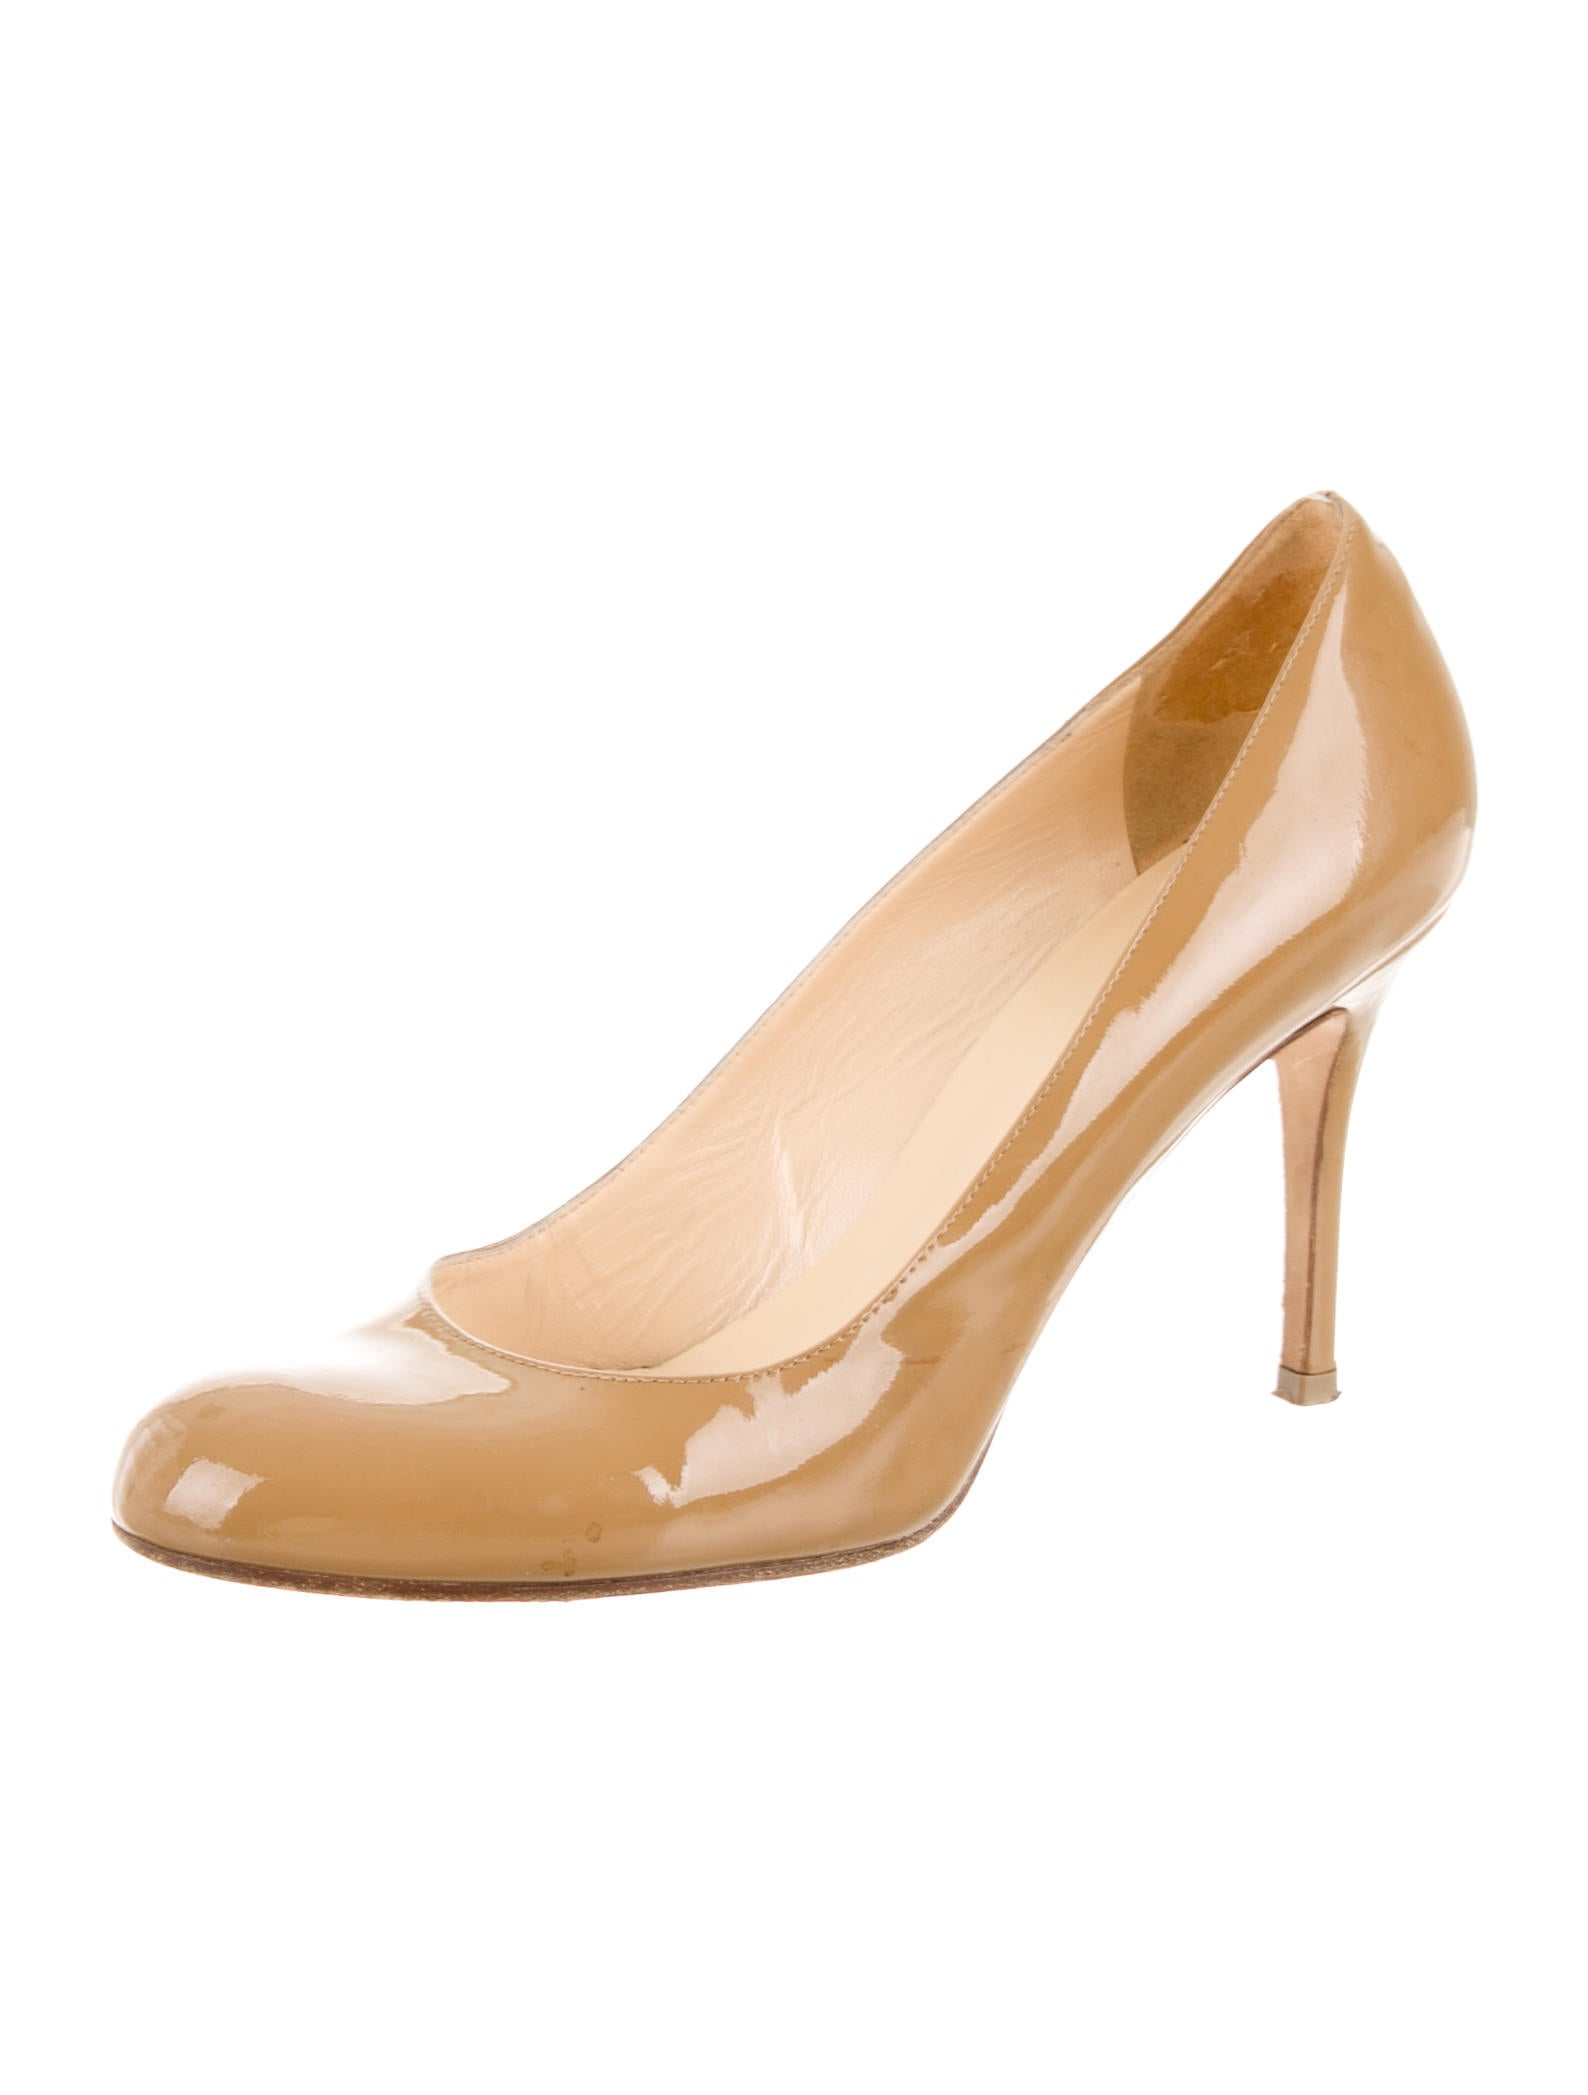 kate spade new york patent leather pumps shoes